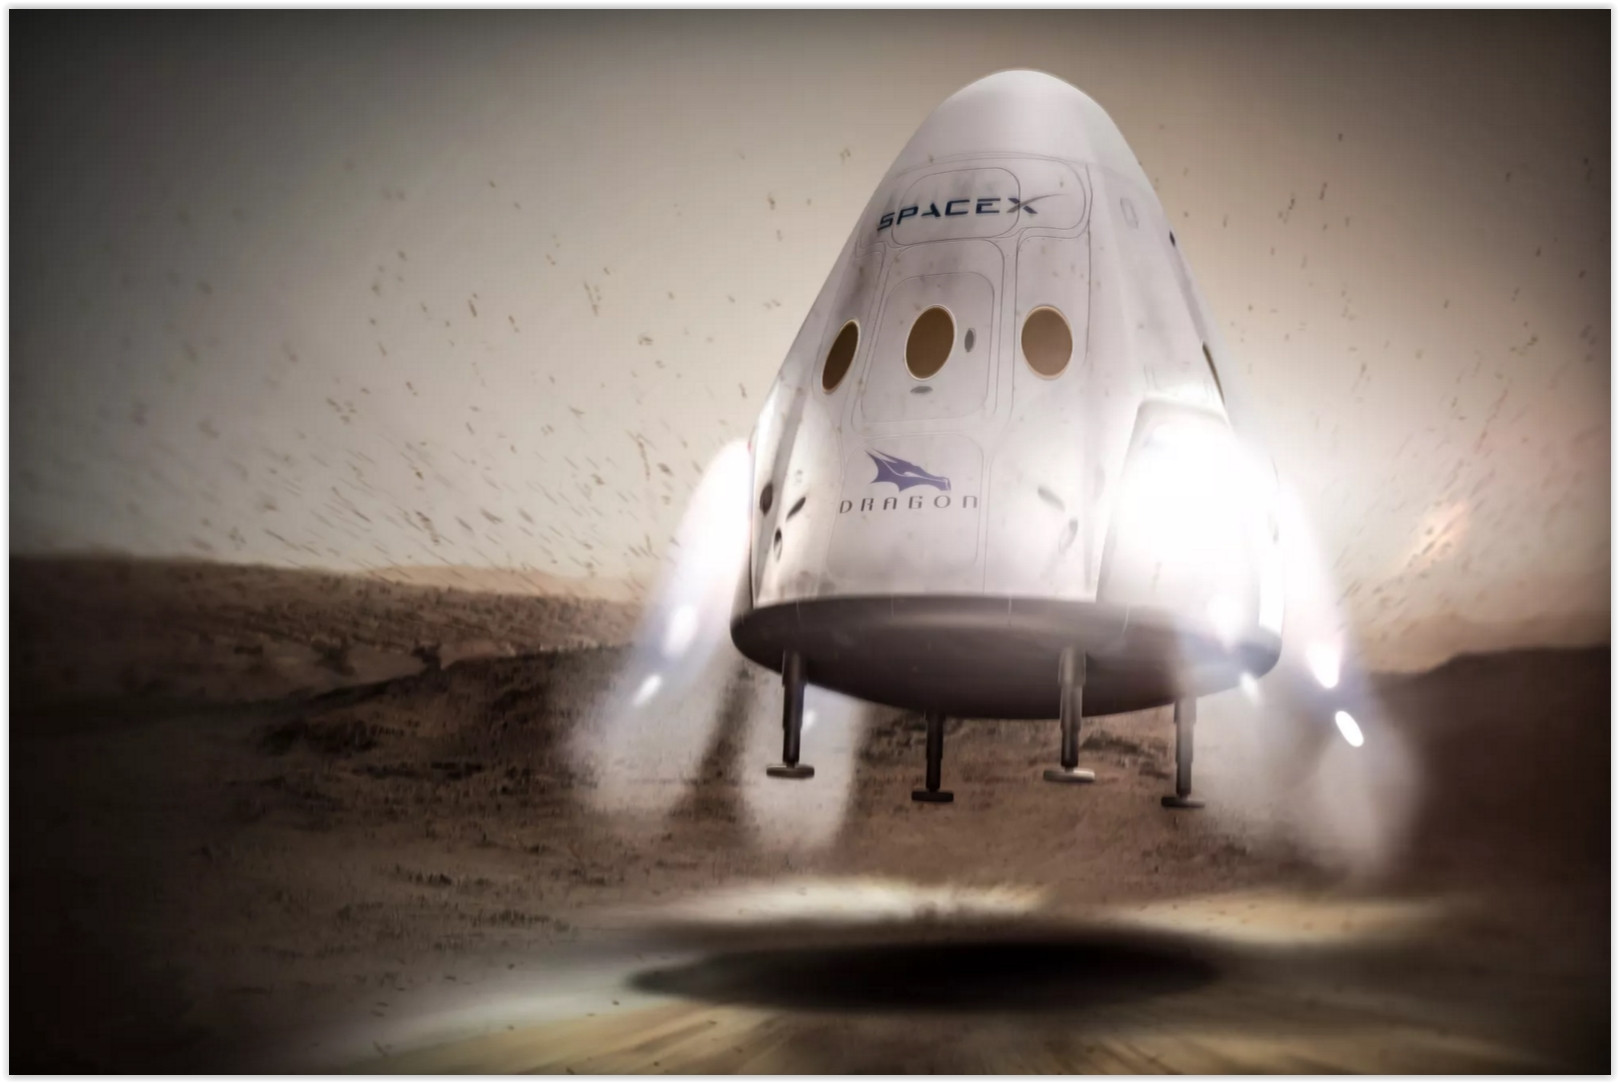 spacex-red-dragon.jpg